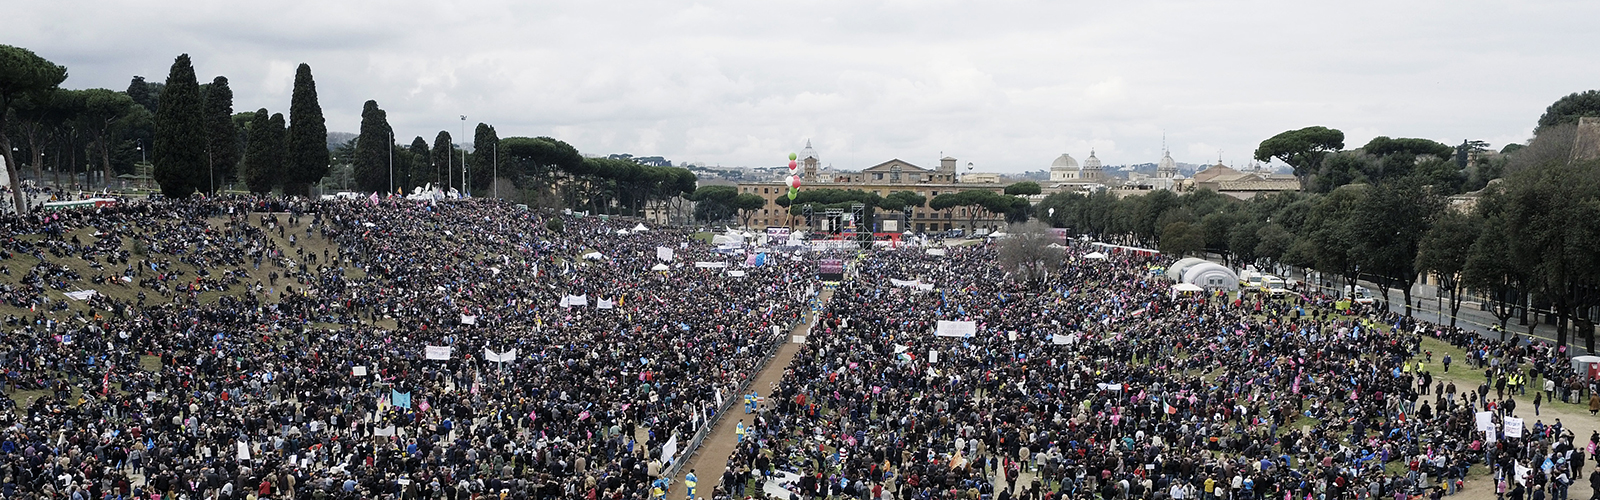 Pro-marriage-demonstration-at-Circus-Maximus-